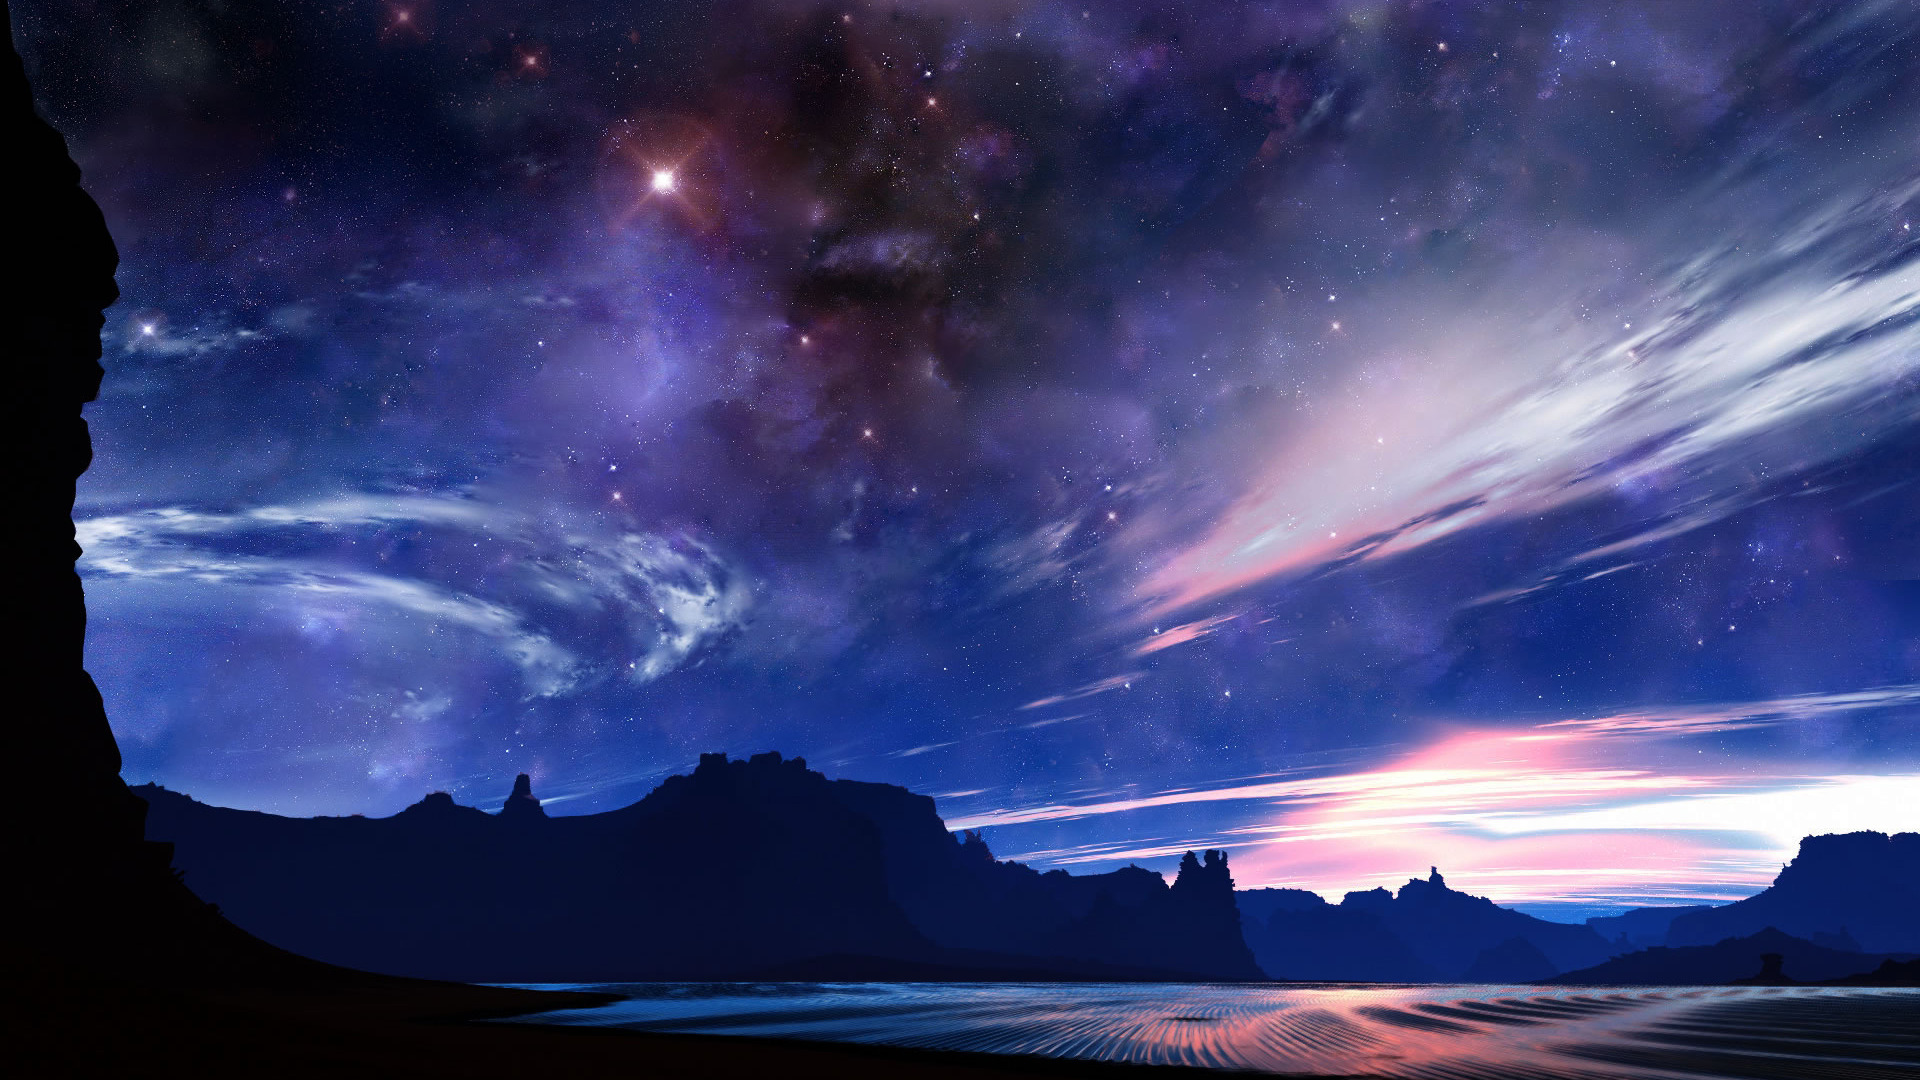 Desert Night Sky Wallpaper